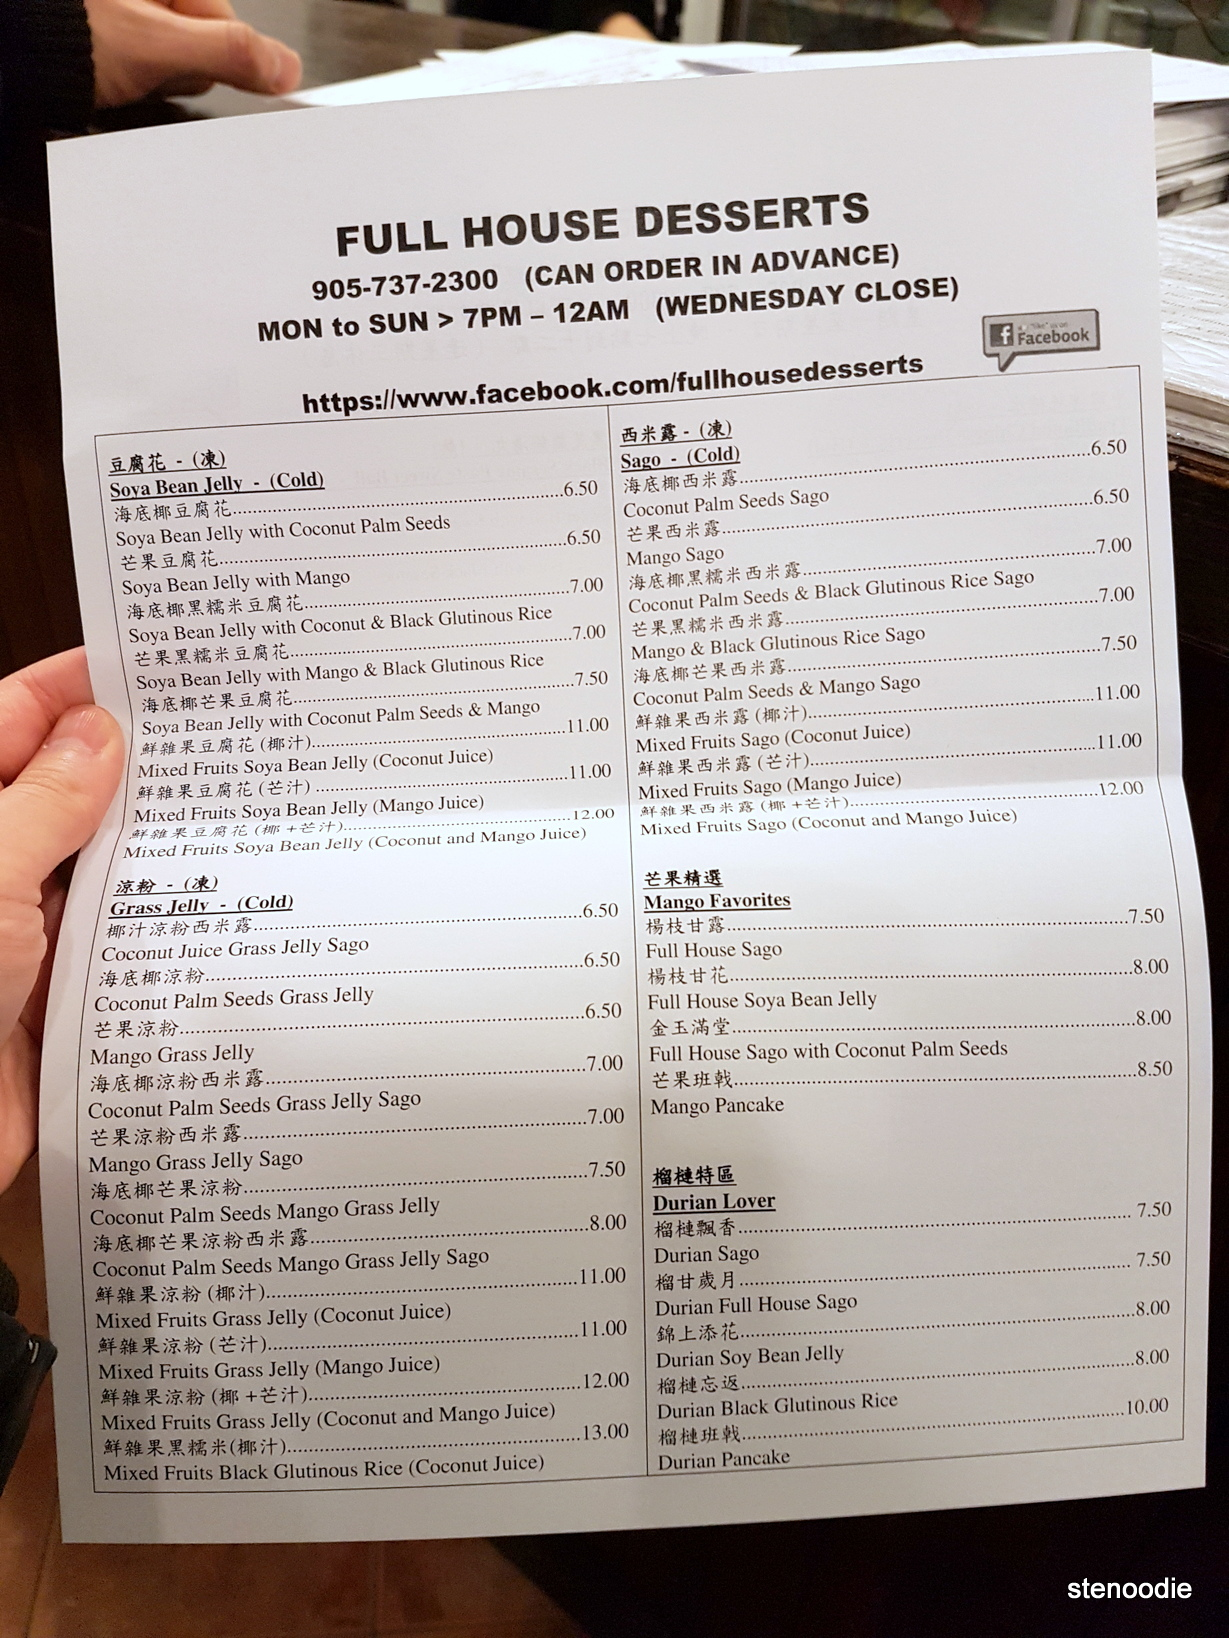 Full House Desserts menu